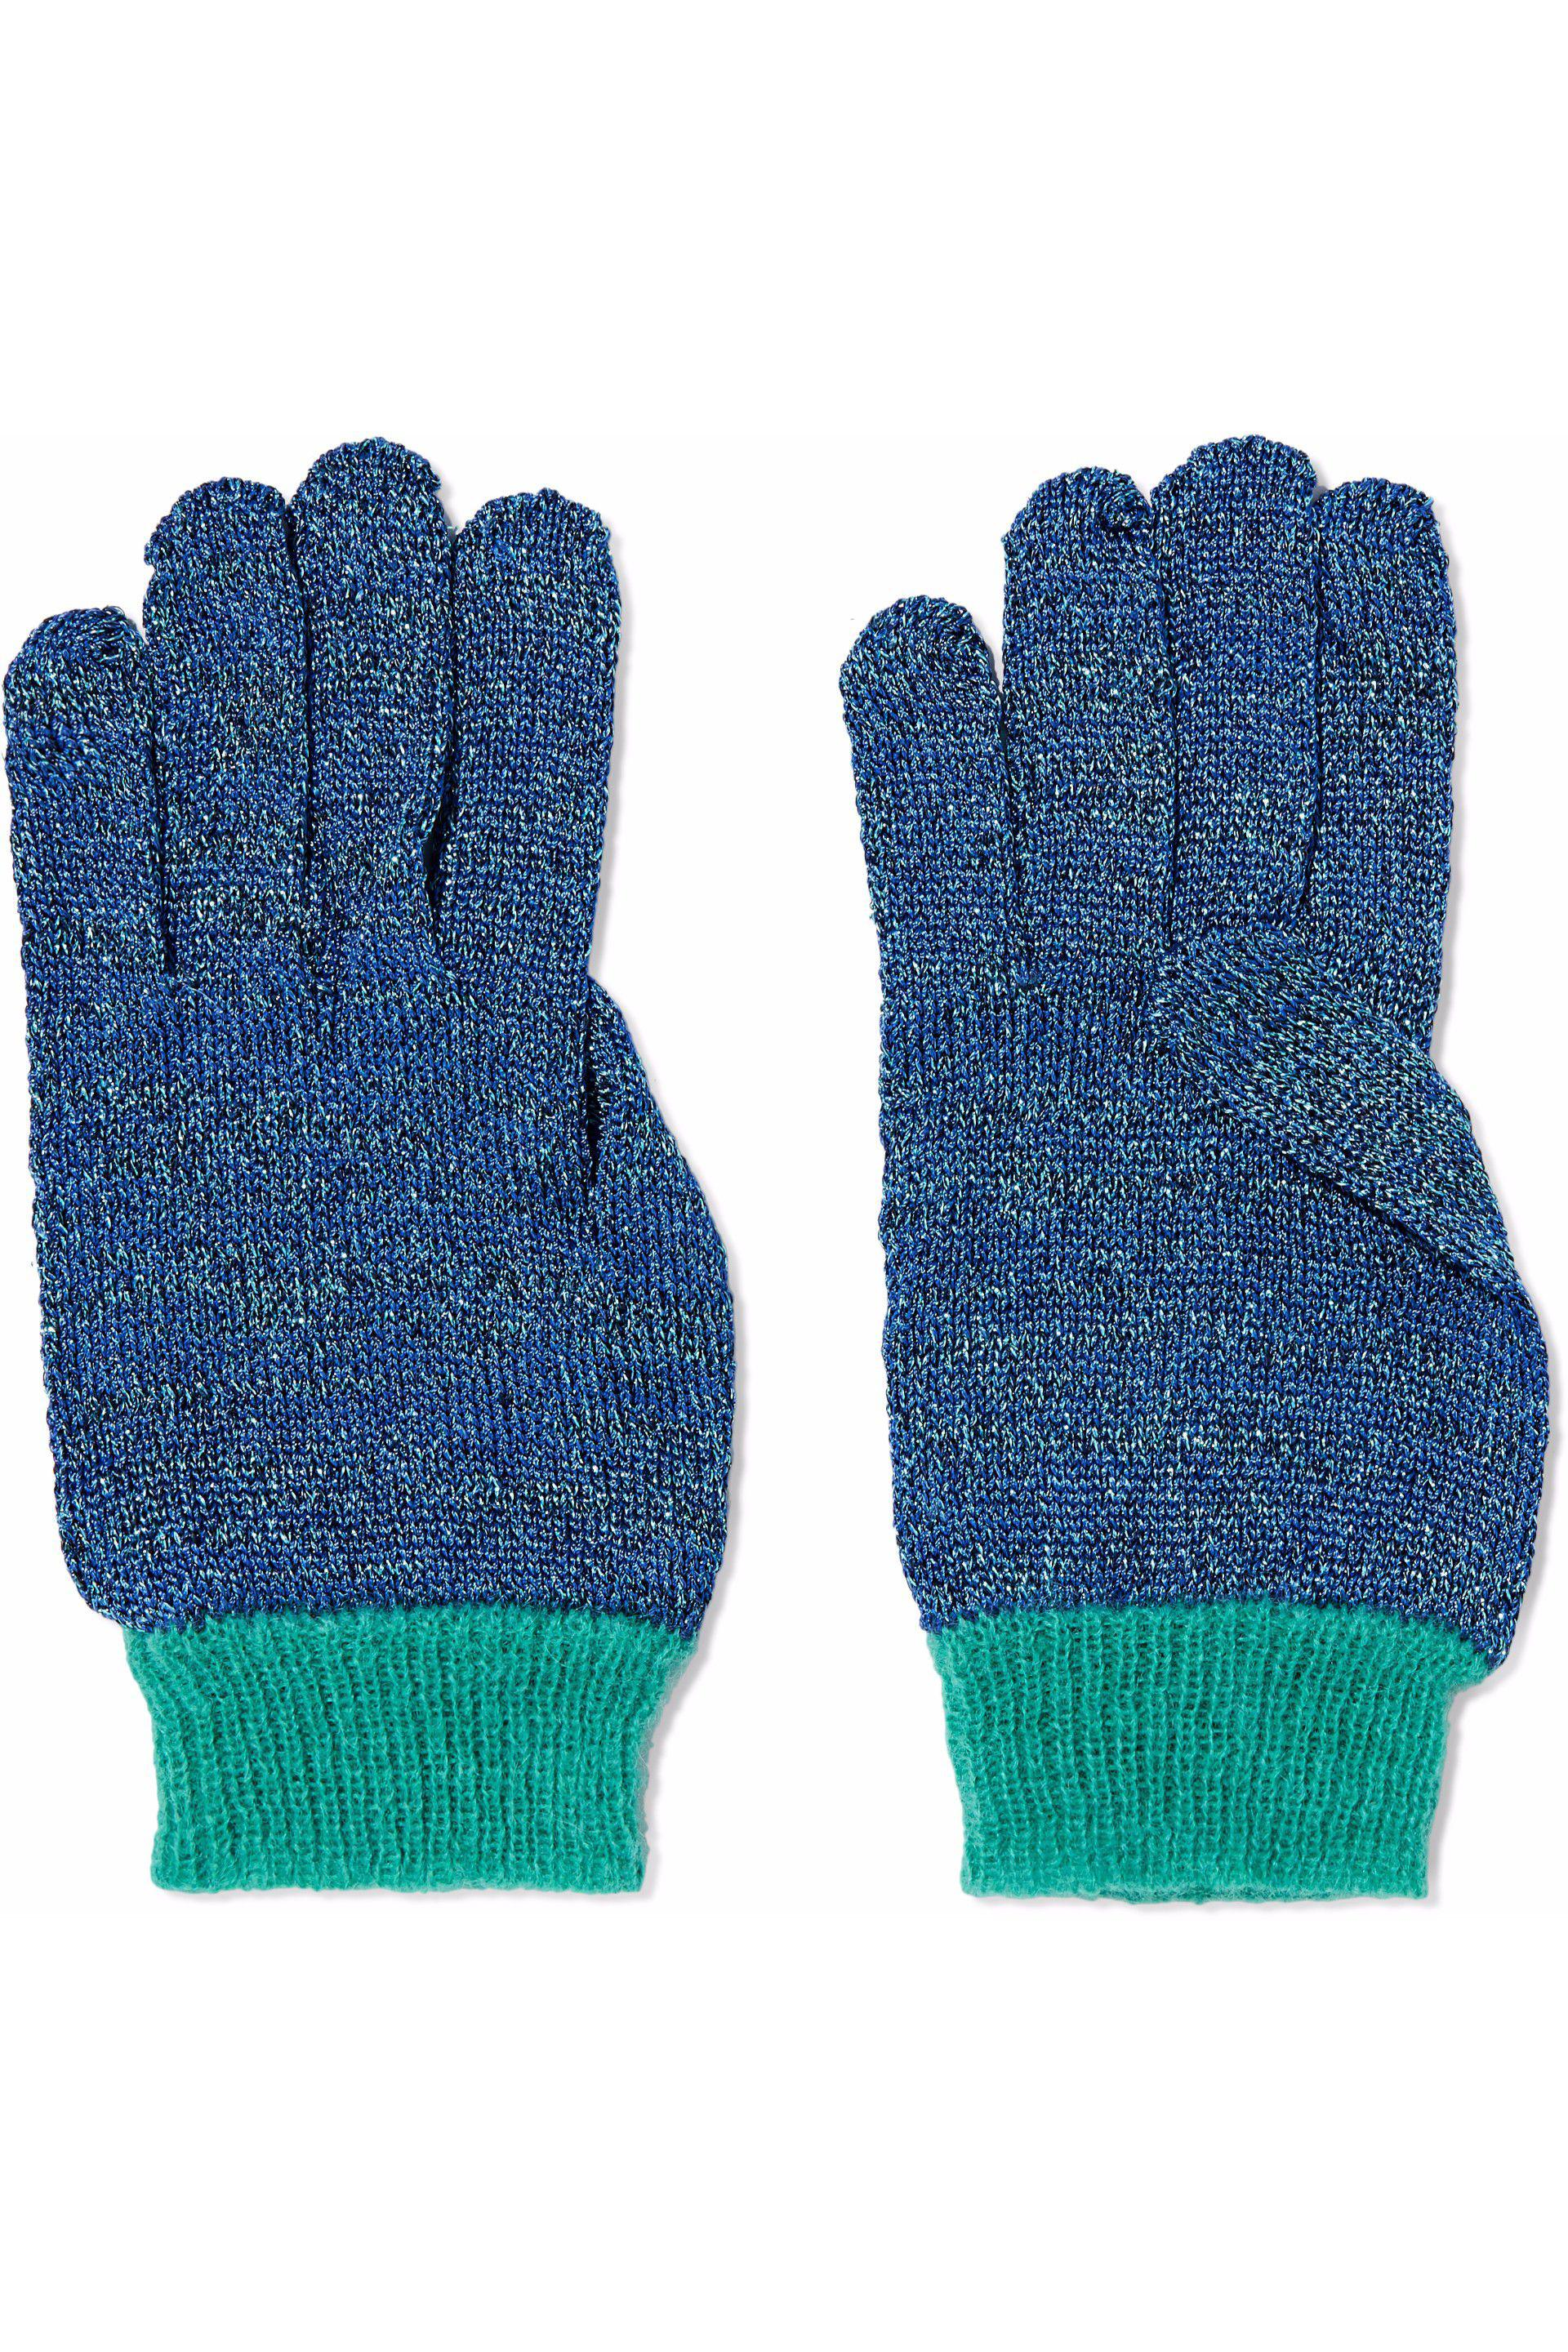 d41ba694ac7 Lyst - Missoni Metallic Crochet-knit Gloves in Blue